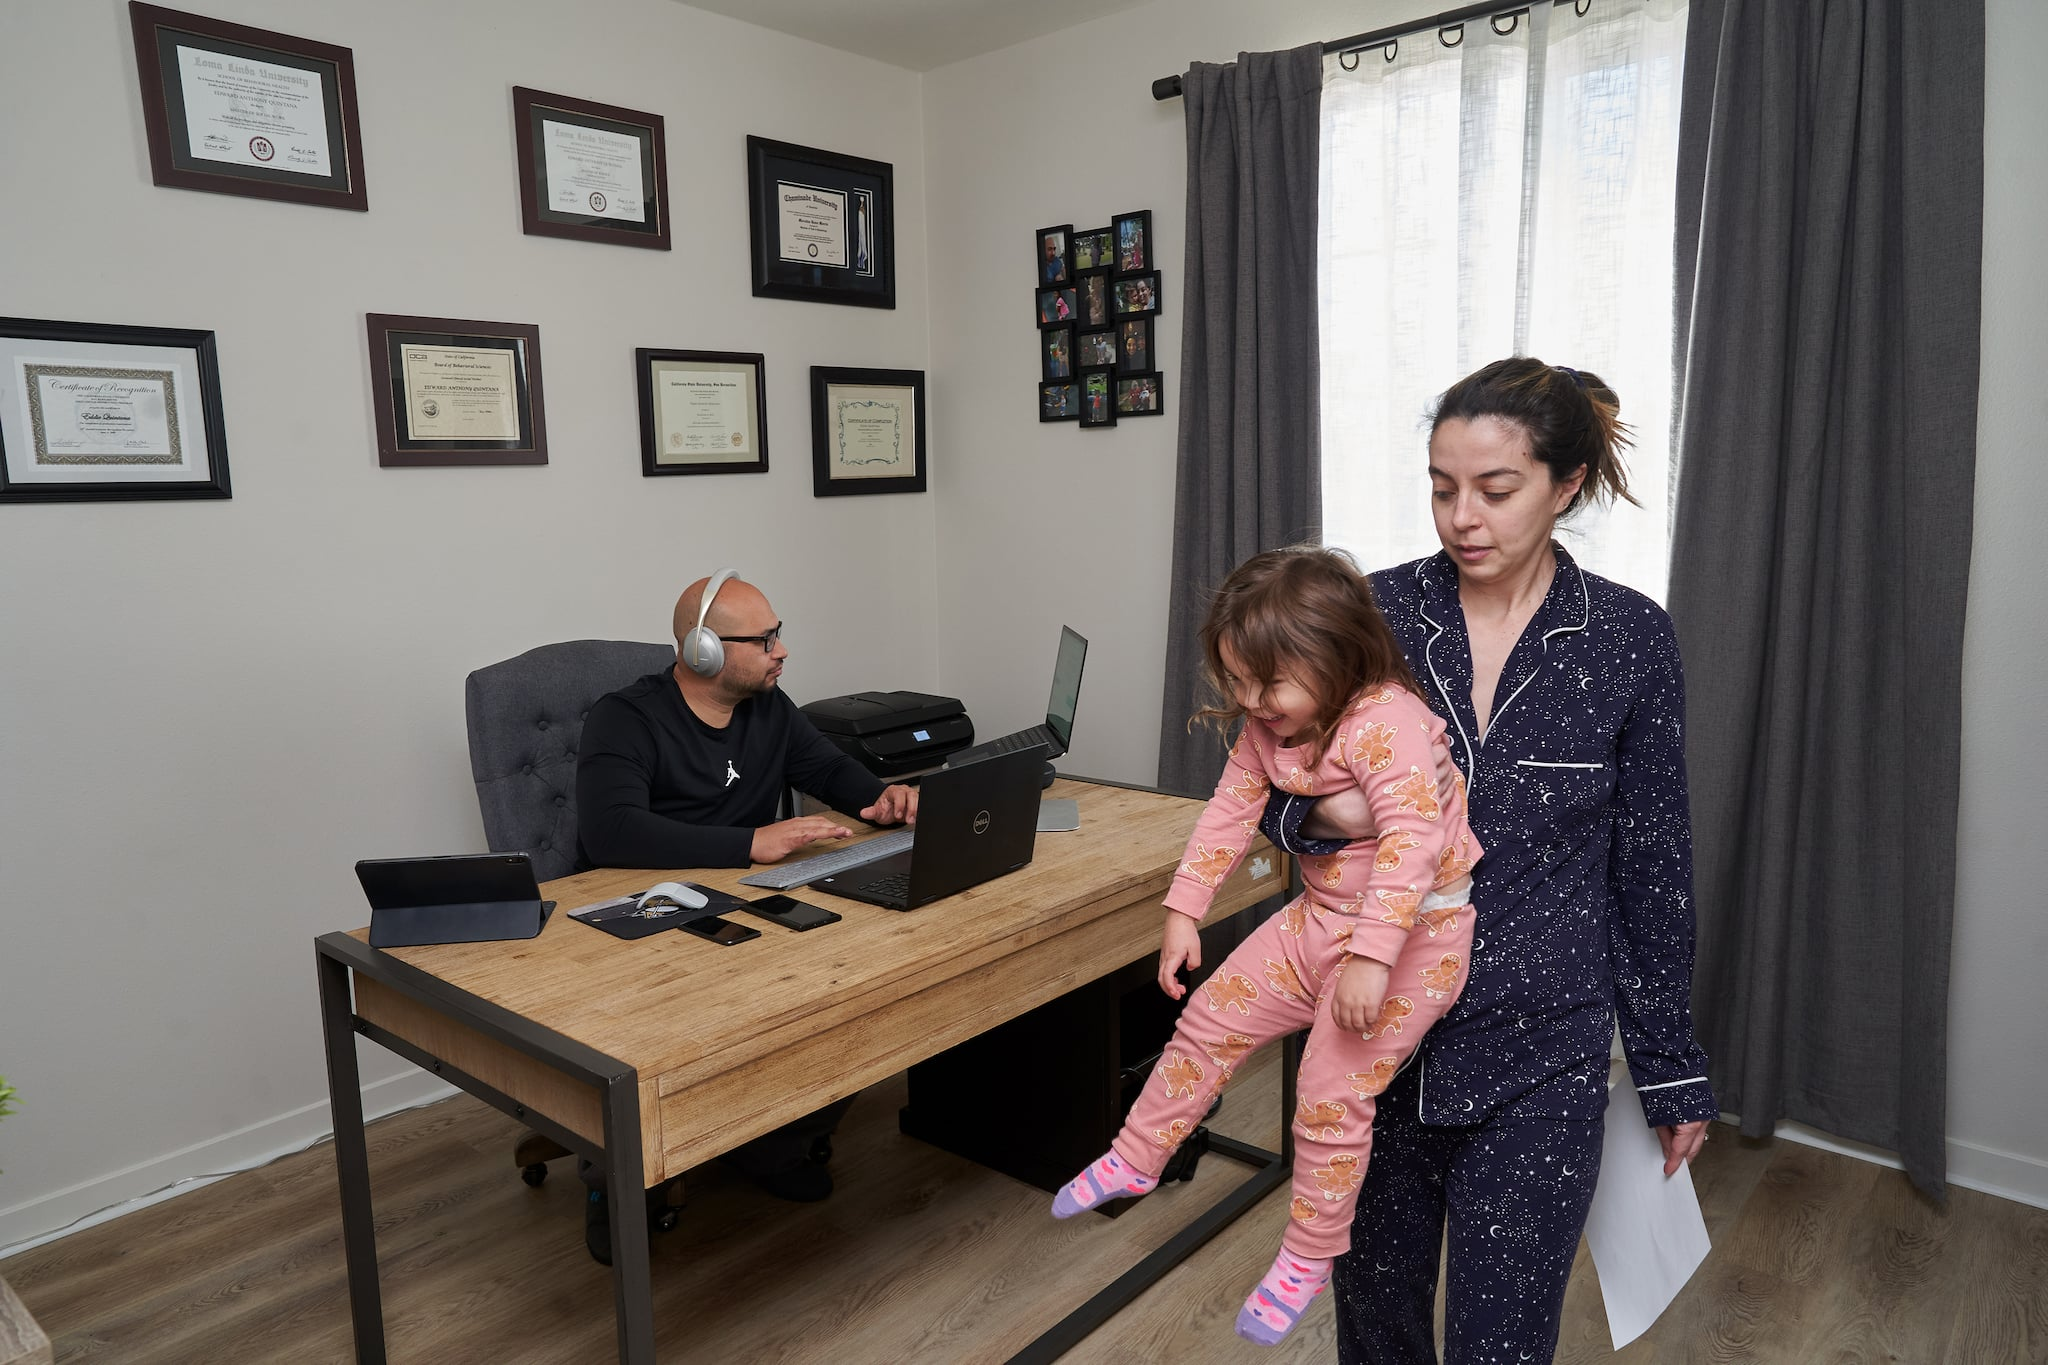 The elusive work-life balance amid work from home